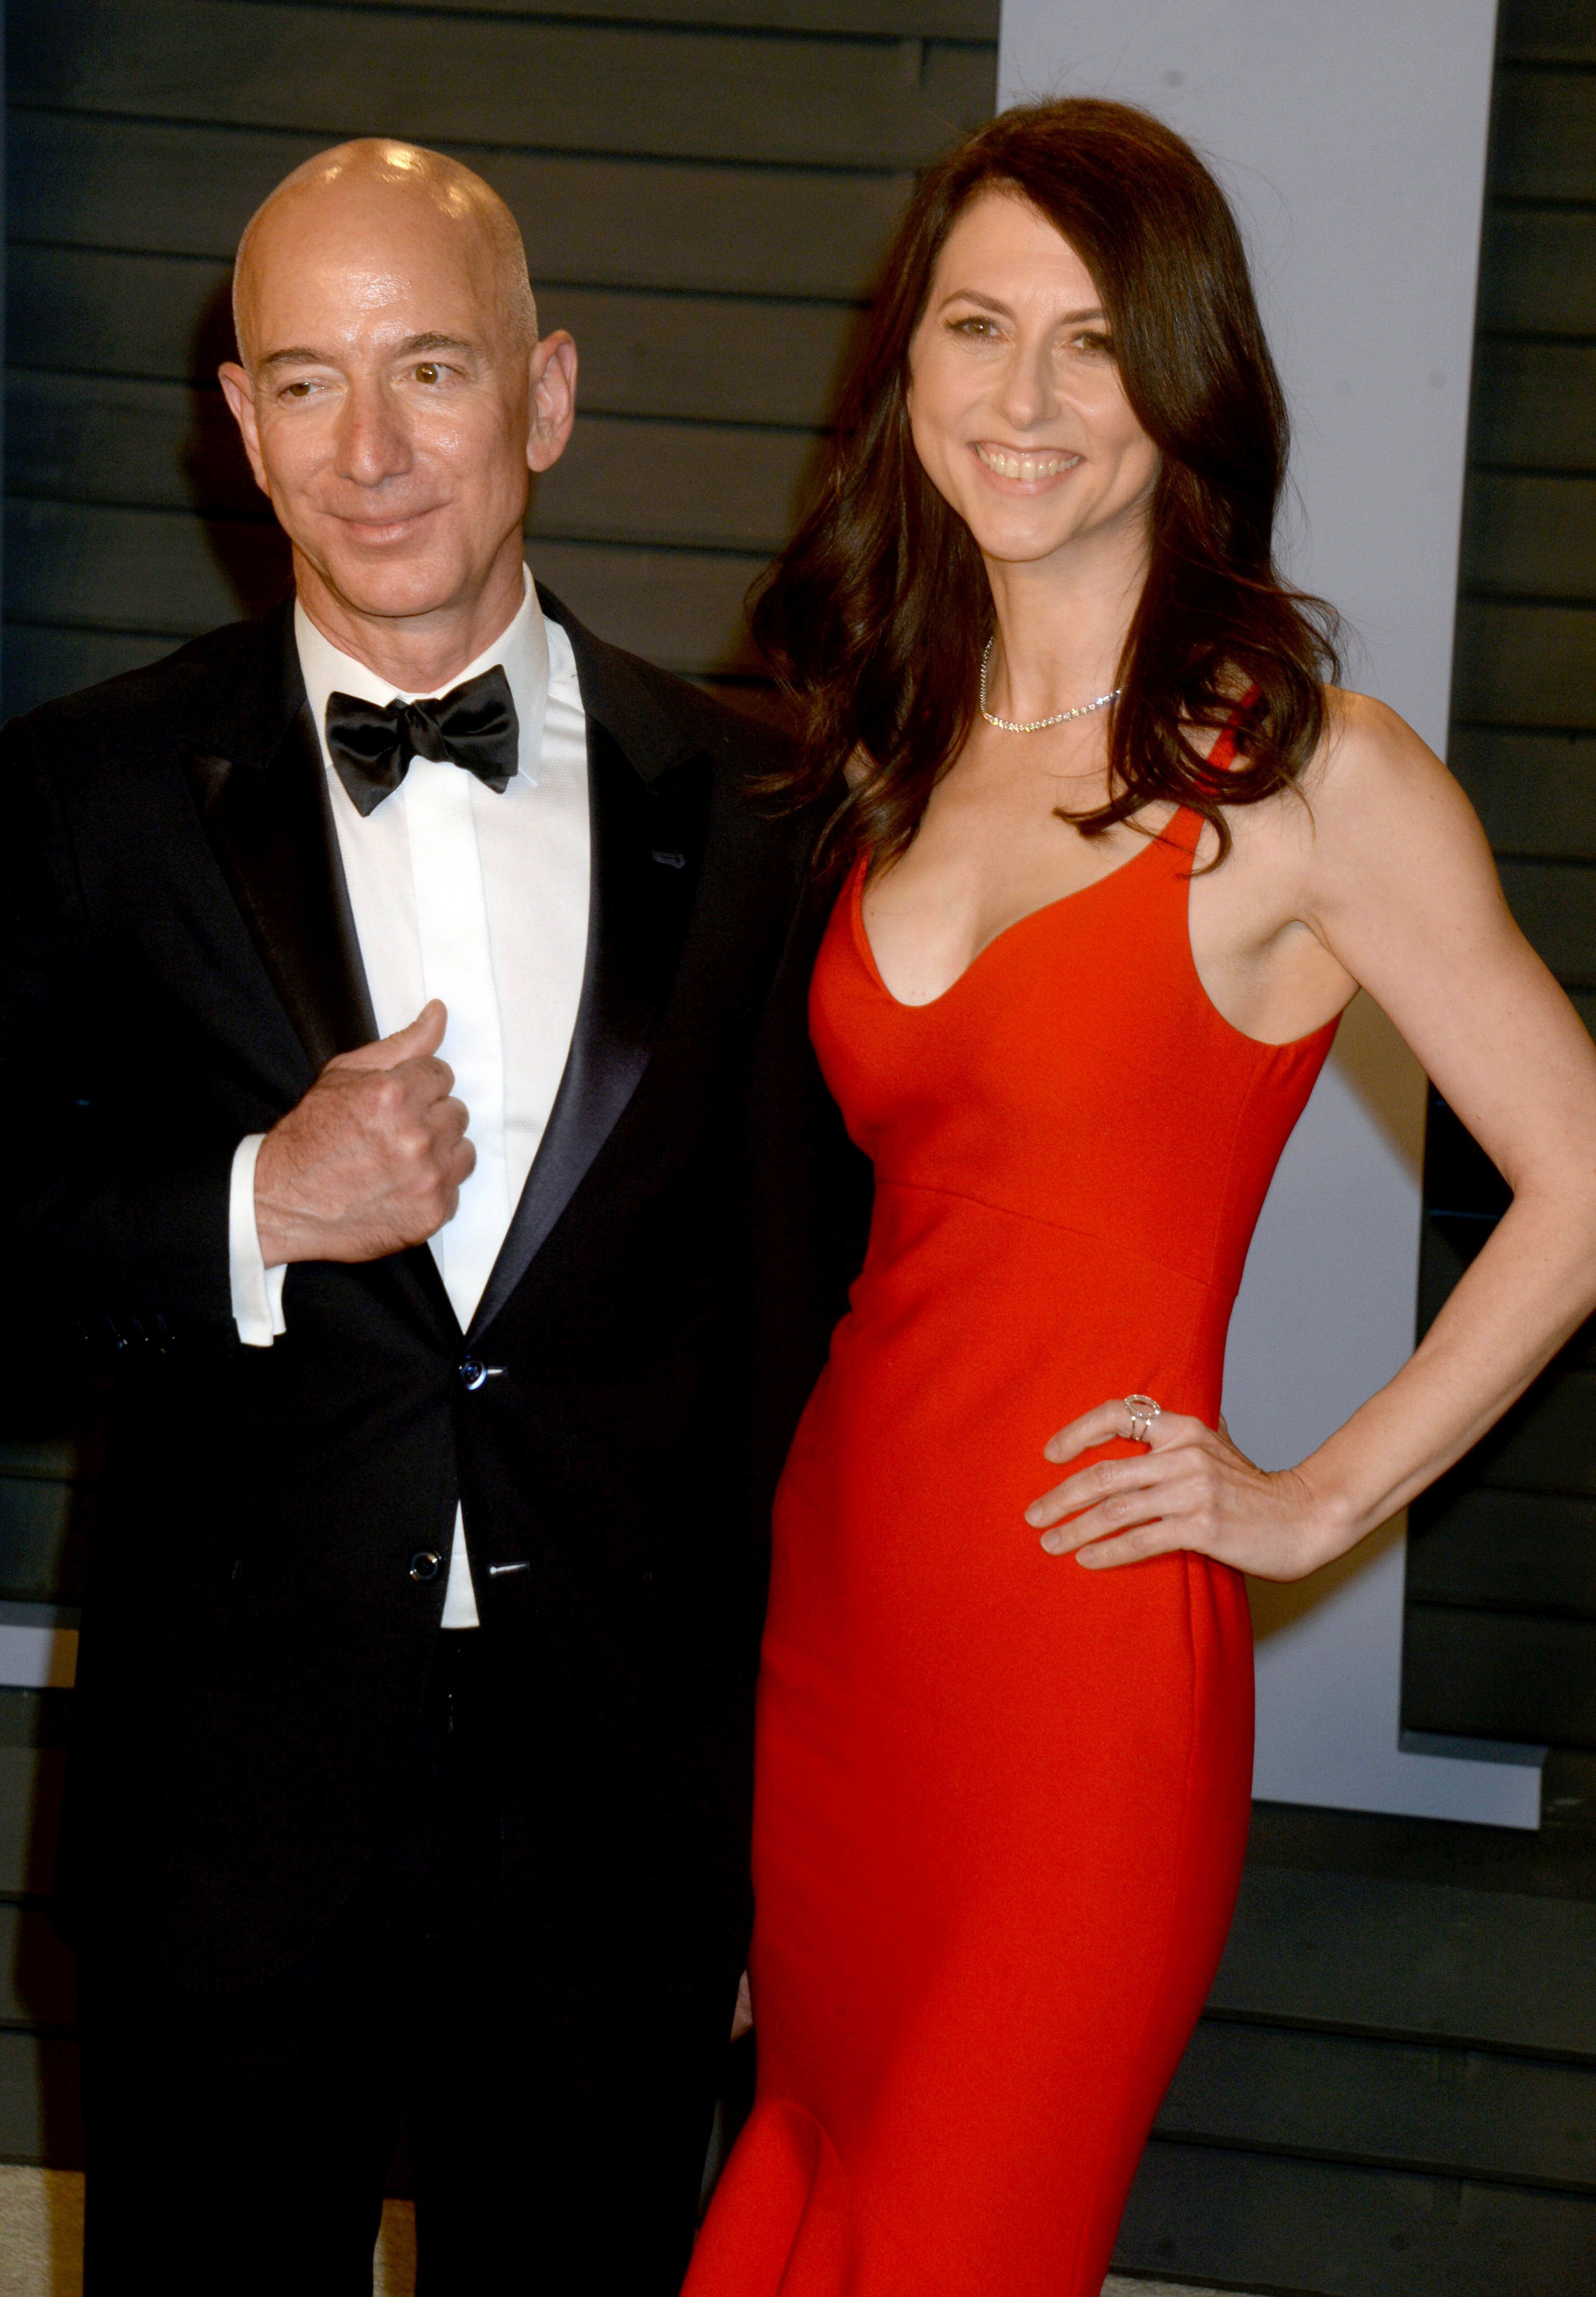 February 12, 2019 - The Jeff Bezos / National Enquirer American Media Publishing scandal involving alleged blackmail, extortion, racy texts and compromising photographs continues to escalate. - File Photo by: zz/Dennis Van Tine/STAR MAX/IPx 2018 3/4/18 Jeff Bezos and his wife MacKenzie Tuttle Bezos at The 2018 Vanity Fair Oscar Party in Beverly Hills, CA.